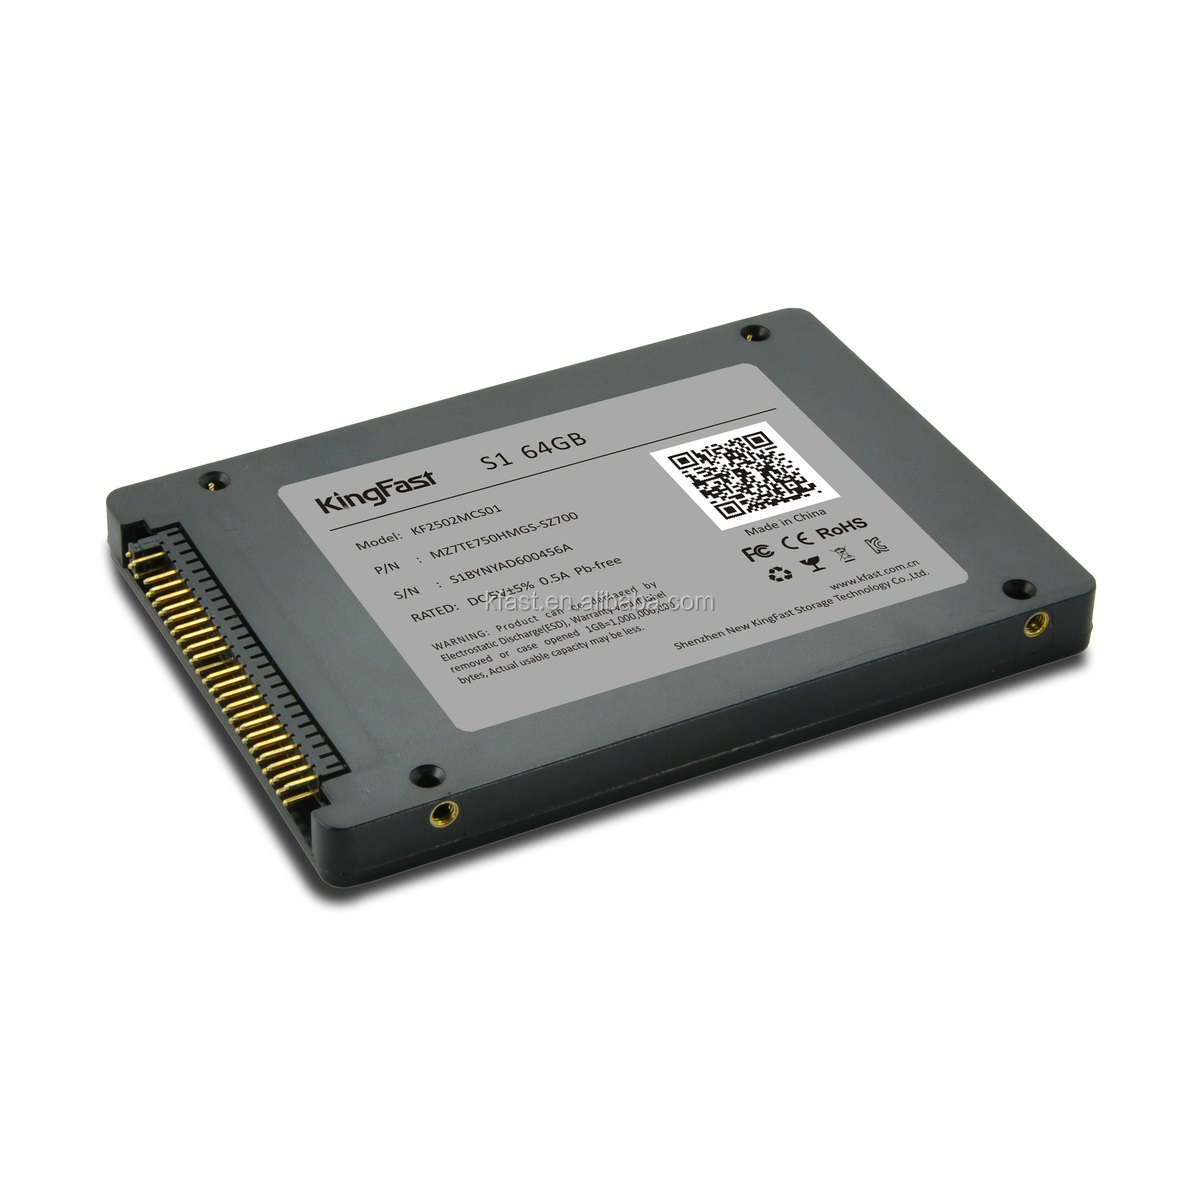 Computer accessories, laptop ssd 32gb ssd cheapest price.